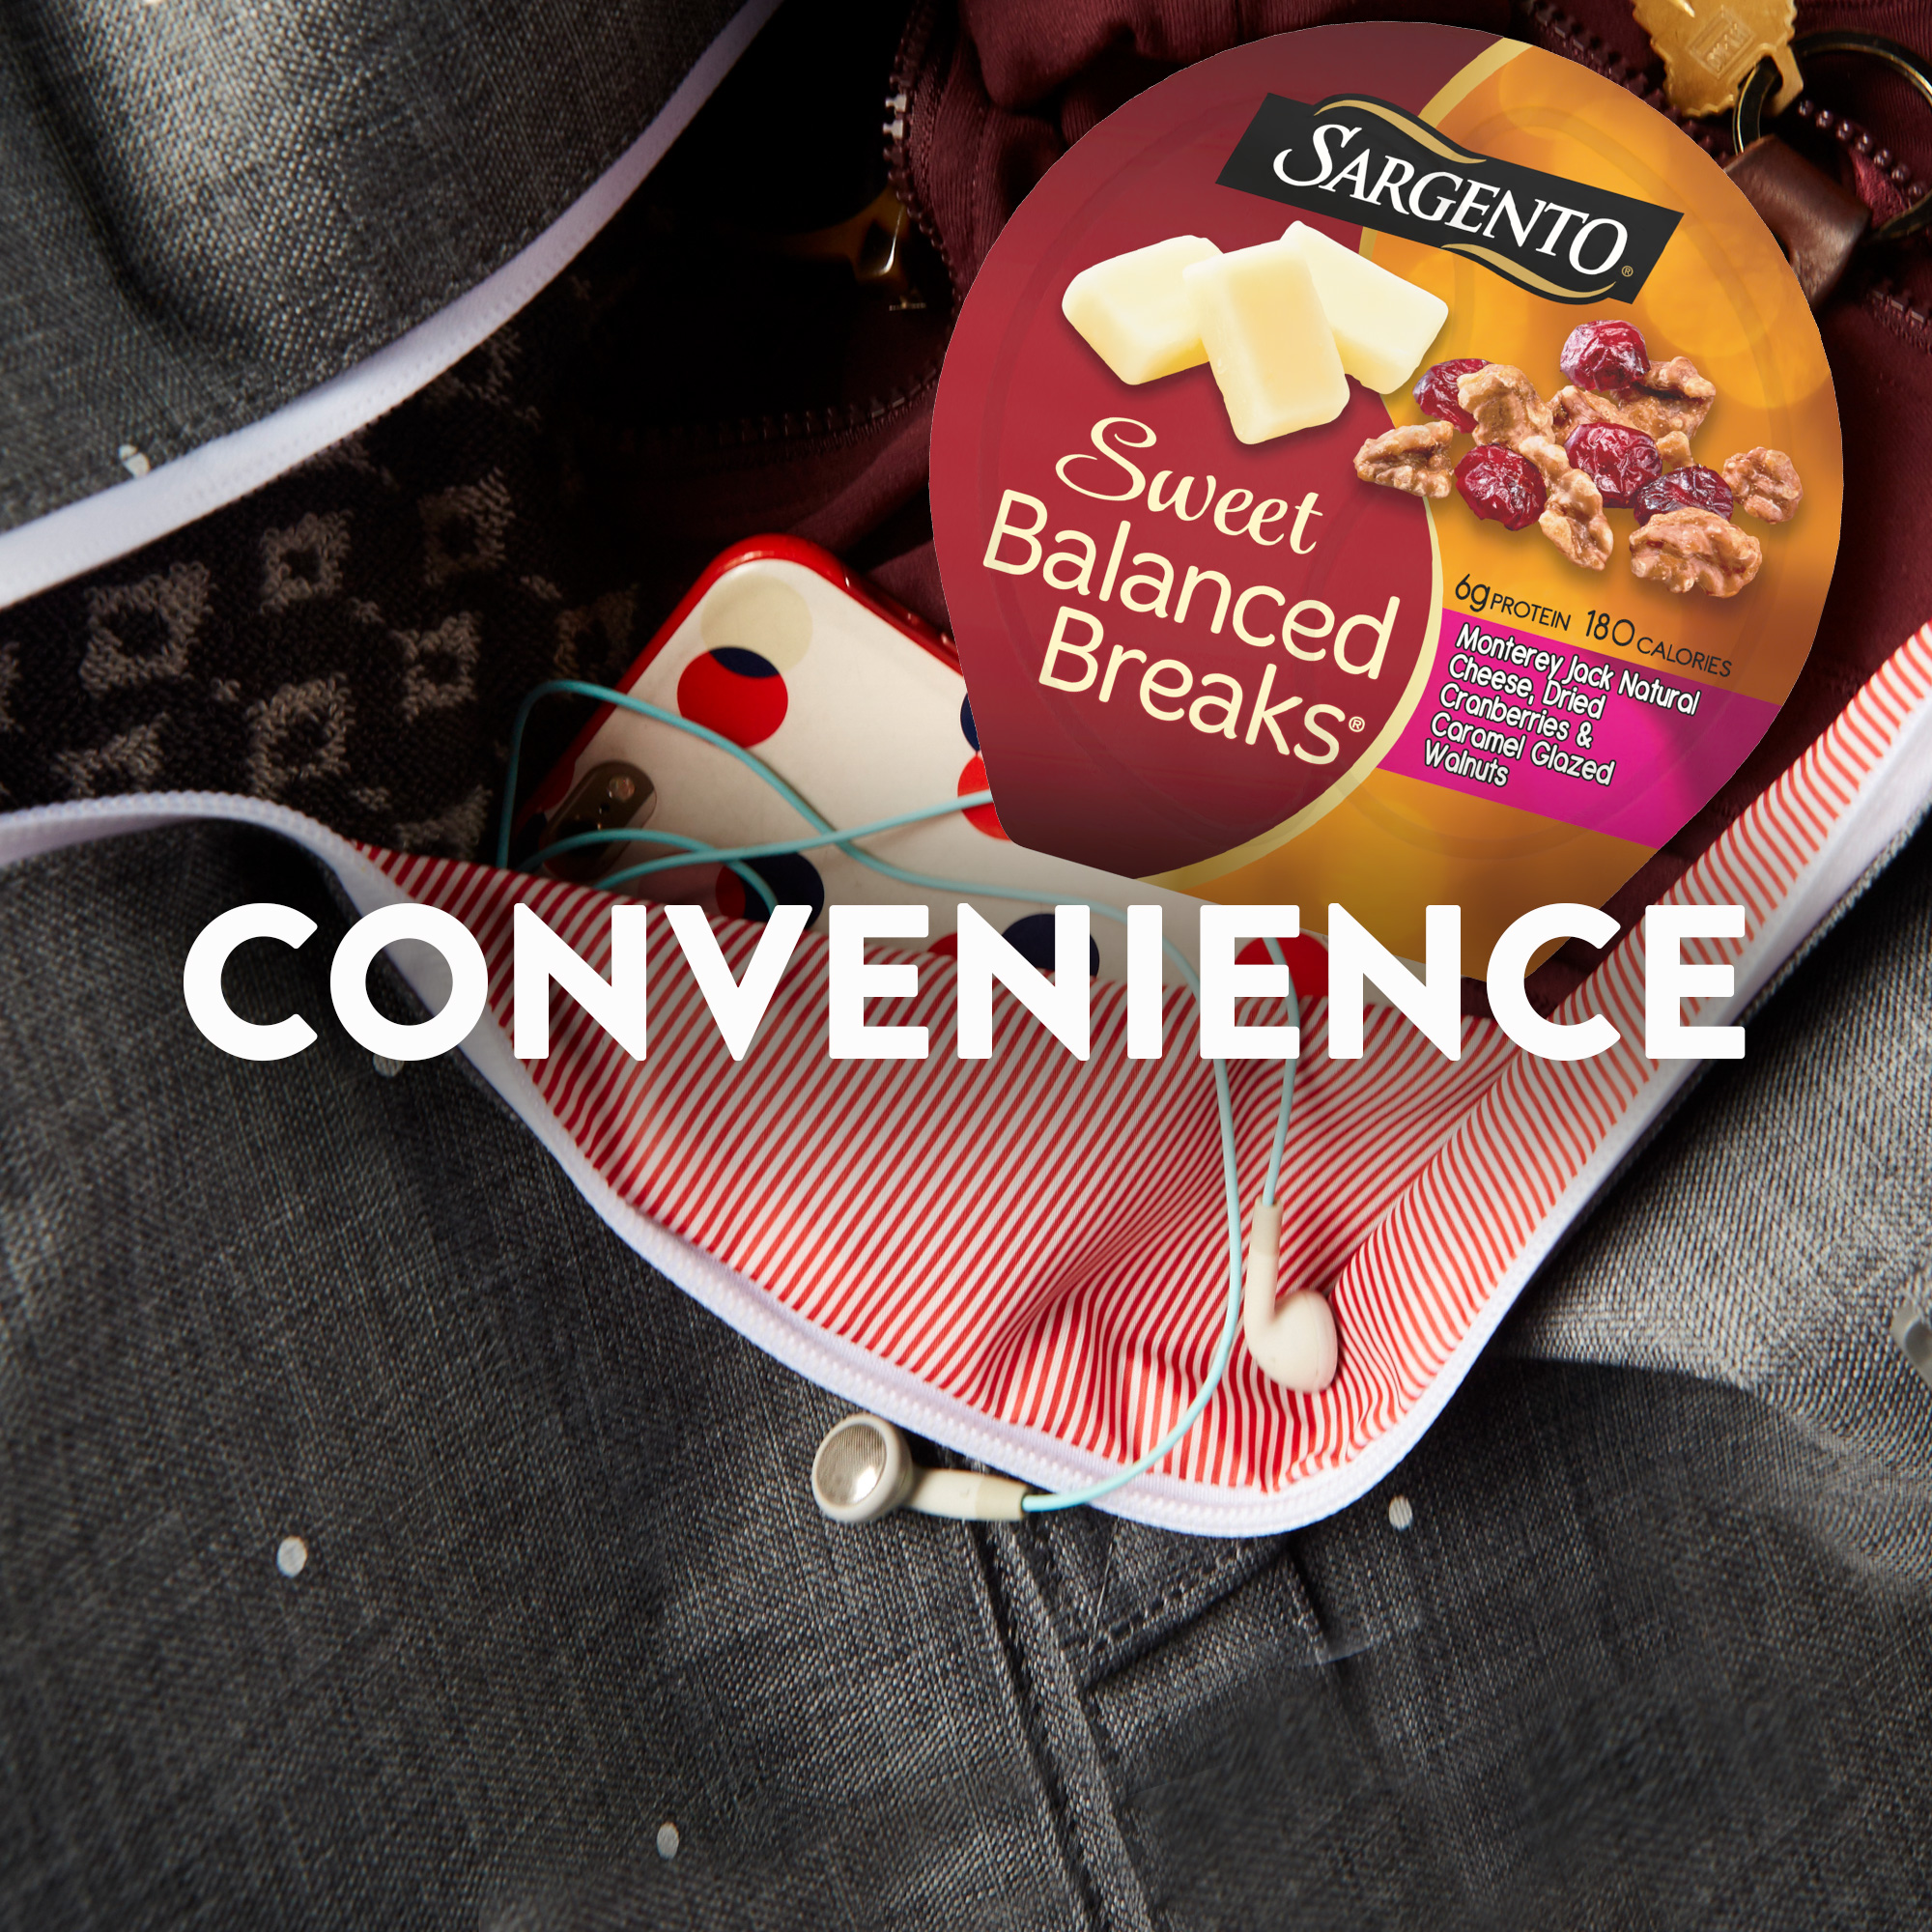 Sargento® Sweet Balanced Breaks® Monterey Jack Natural Cheese, Dried Cranberries and Caramel Glazed Walnuts